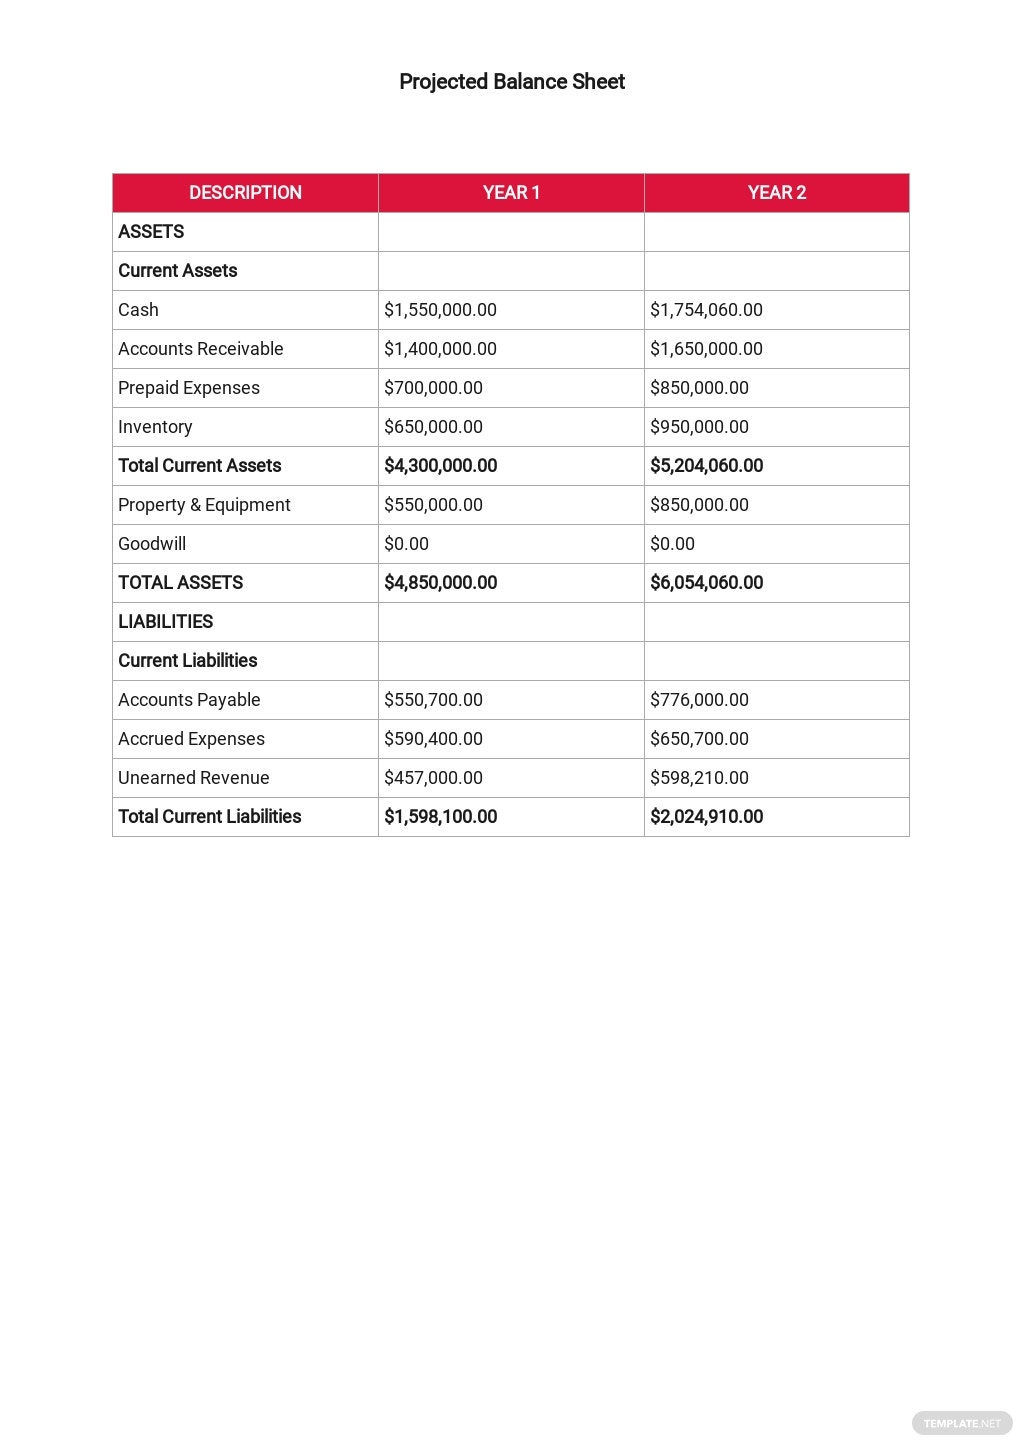 Commercial Contractor Business Plan Template 9.jpe